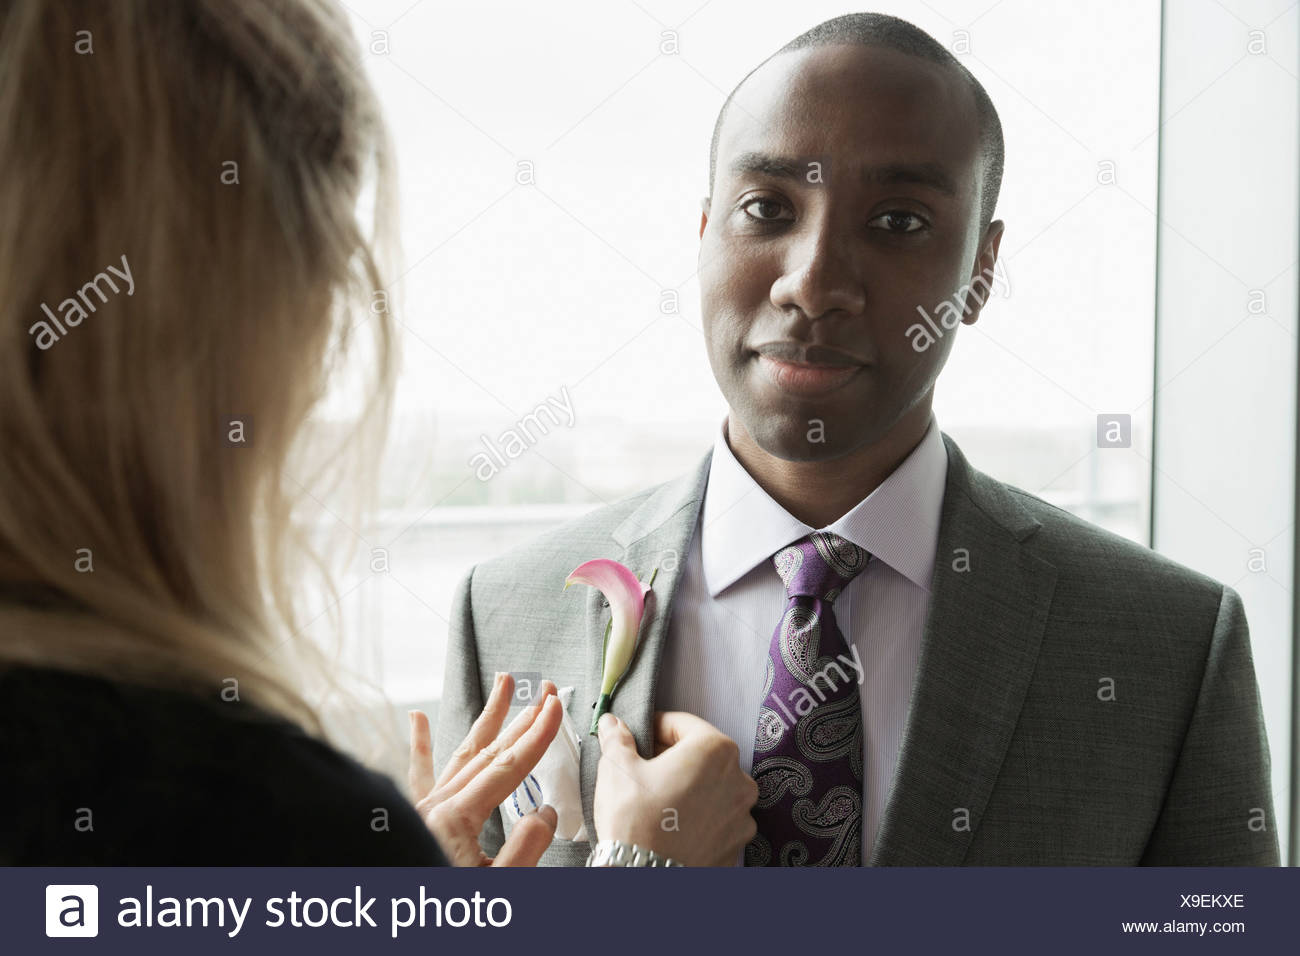 Bridegroom getting ready with help from friend - Stock Image